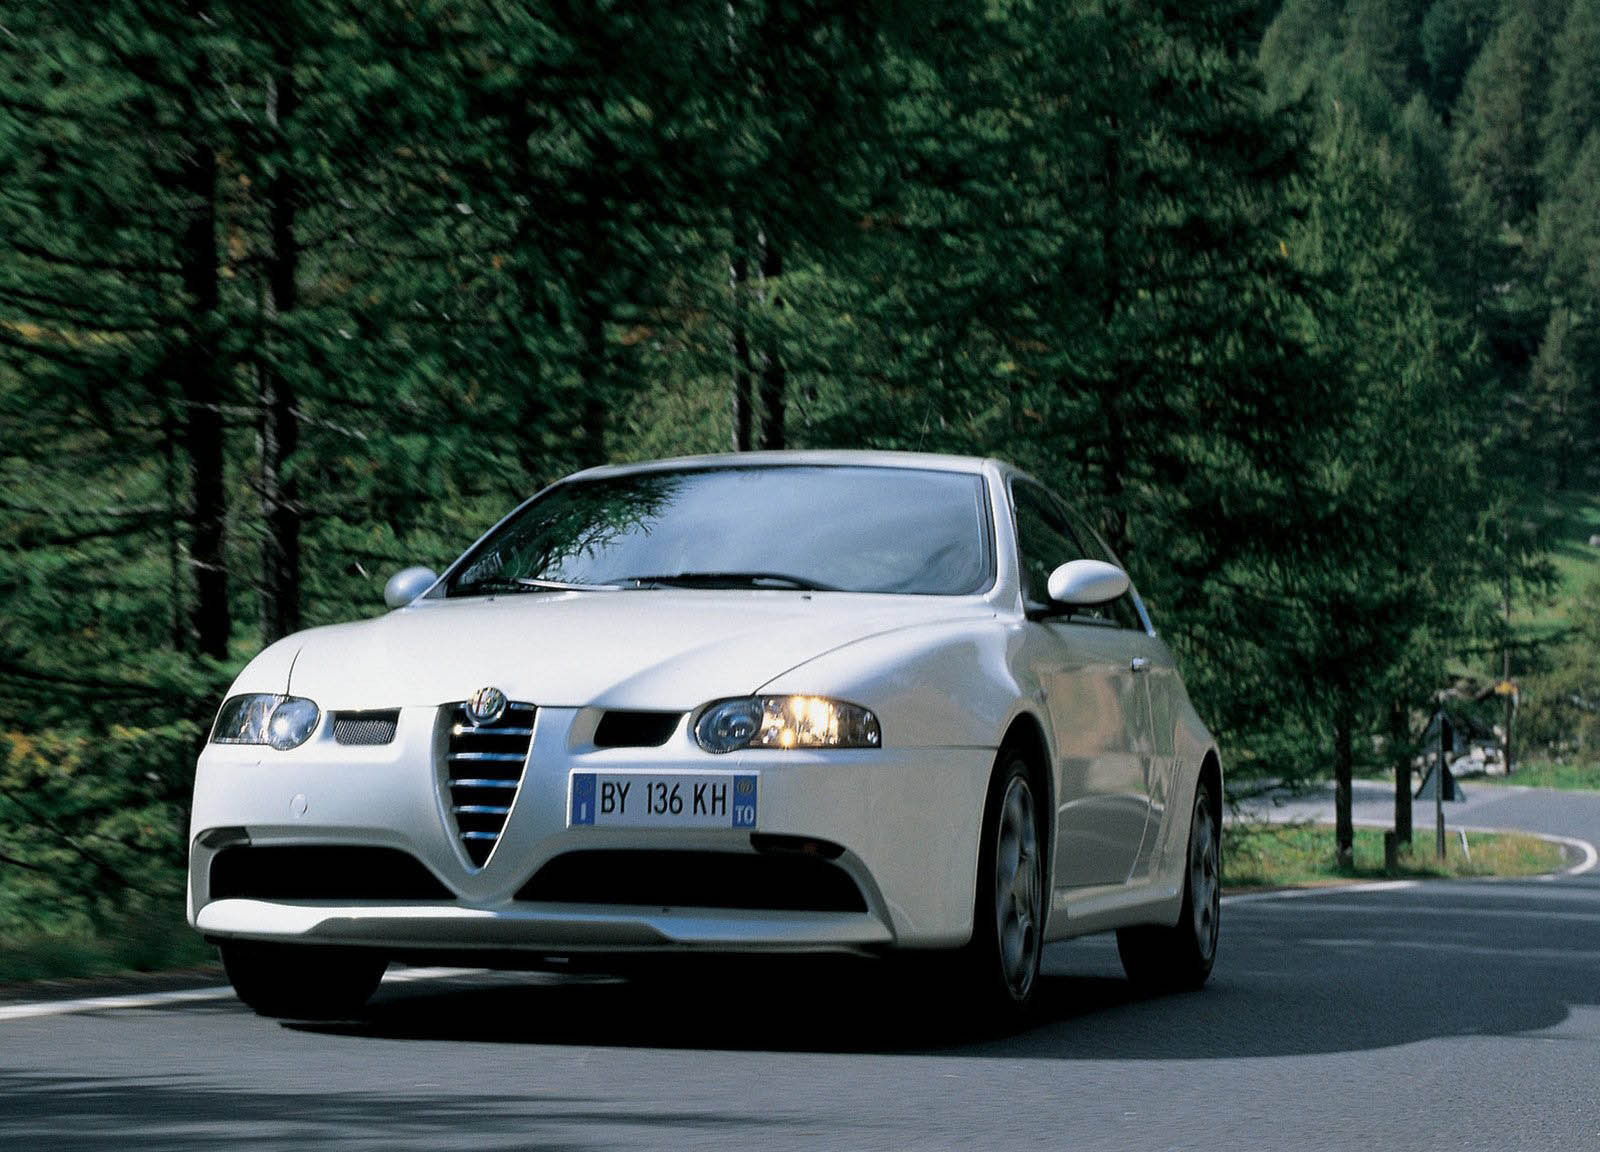 2000 alpha romeo 147 gta picture 220 car review top speed. Black Bedroom Furniture Sets. Home Design Ideas